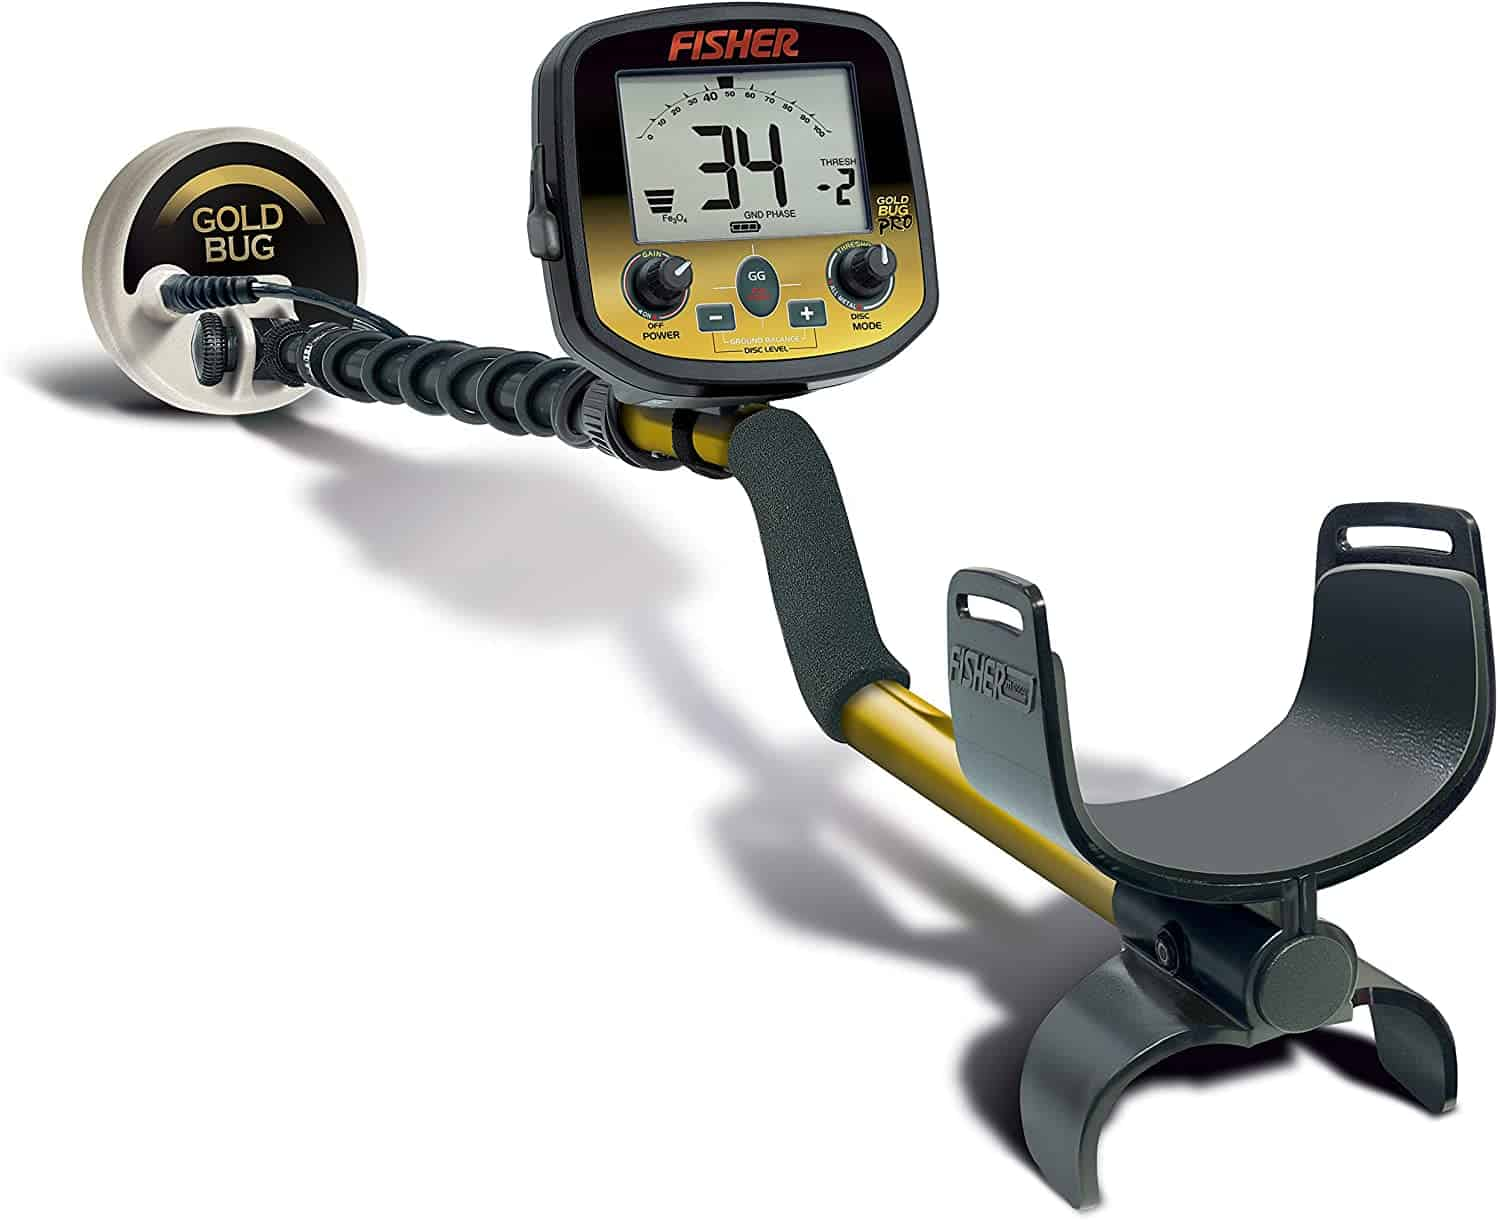 Fisher Gold Bug Metal Detector